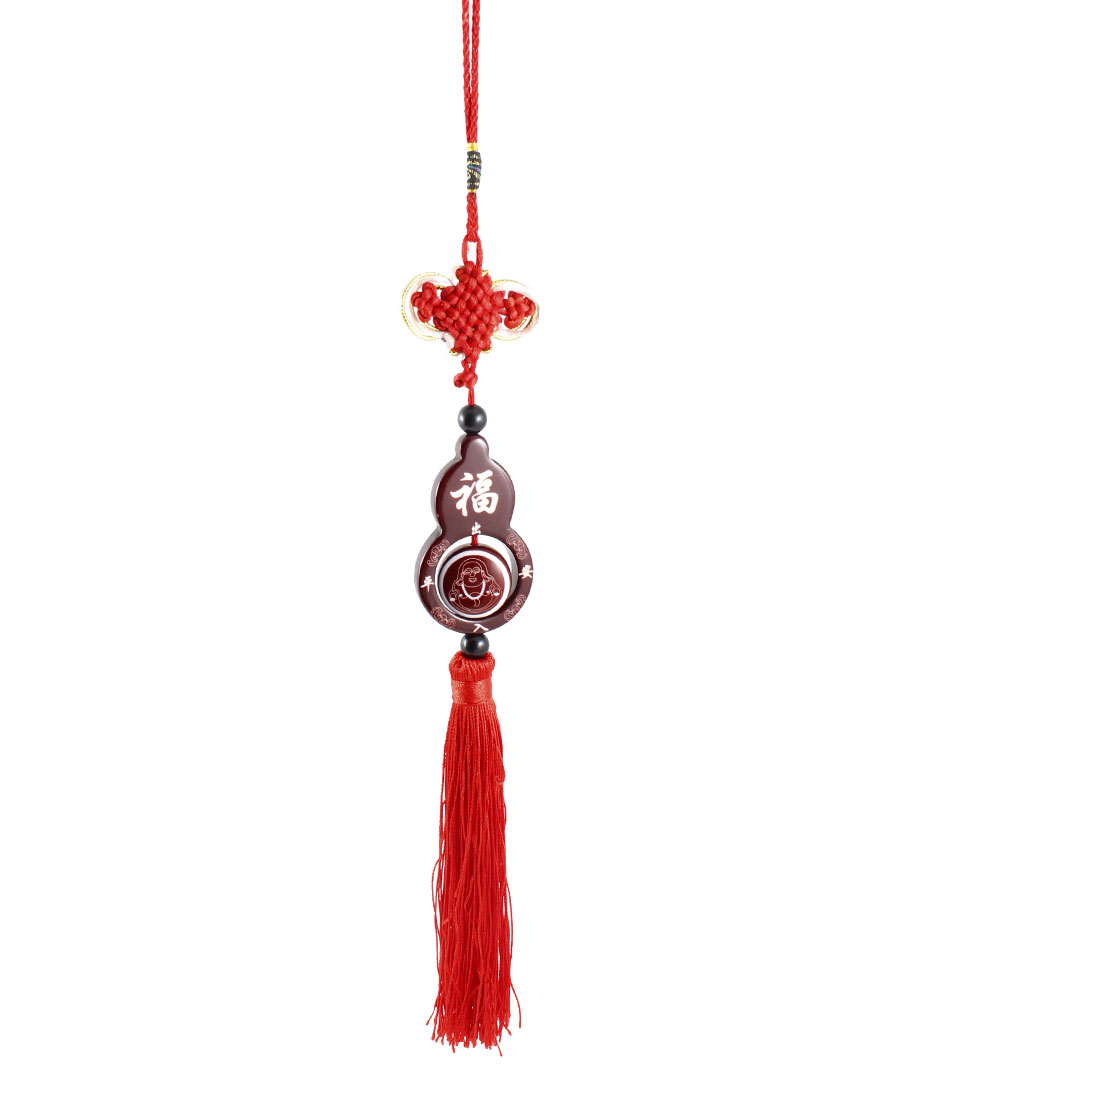 Home Room Tathagata Print Gourd Shape Wooden Pendant Burgundy Red Hanging Decor